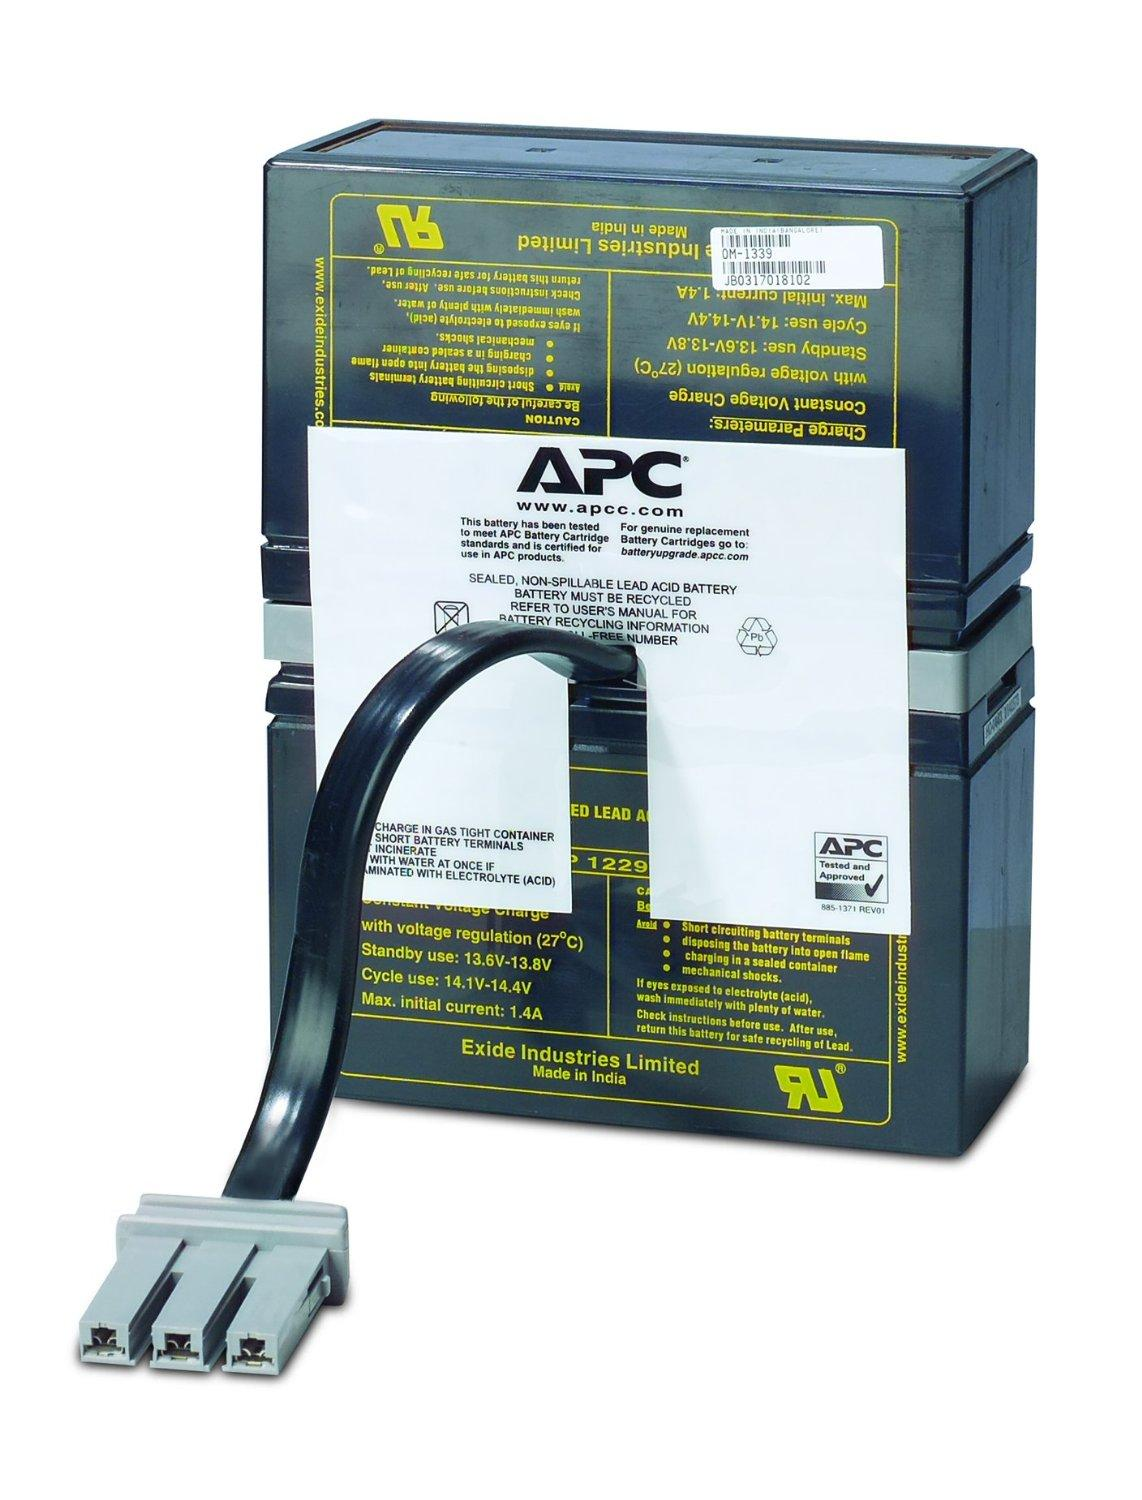 Apc Wiring Diagram Free Image About Wiring Diagram And Schematic